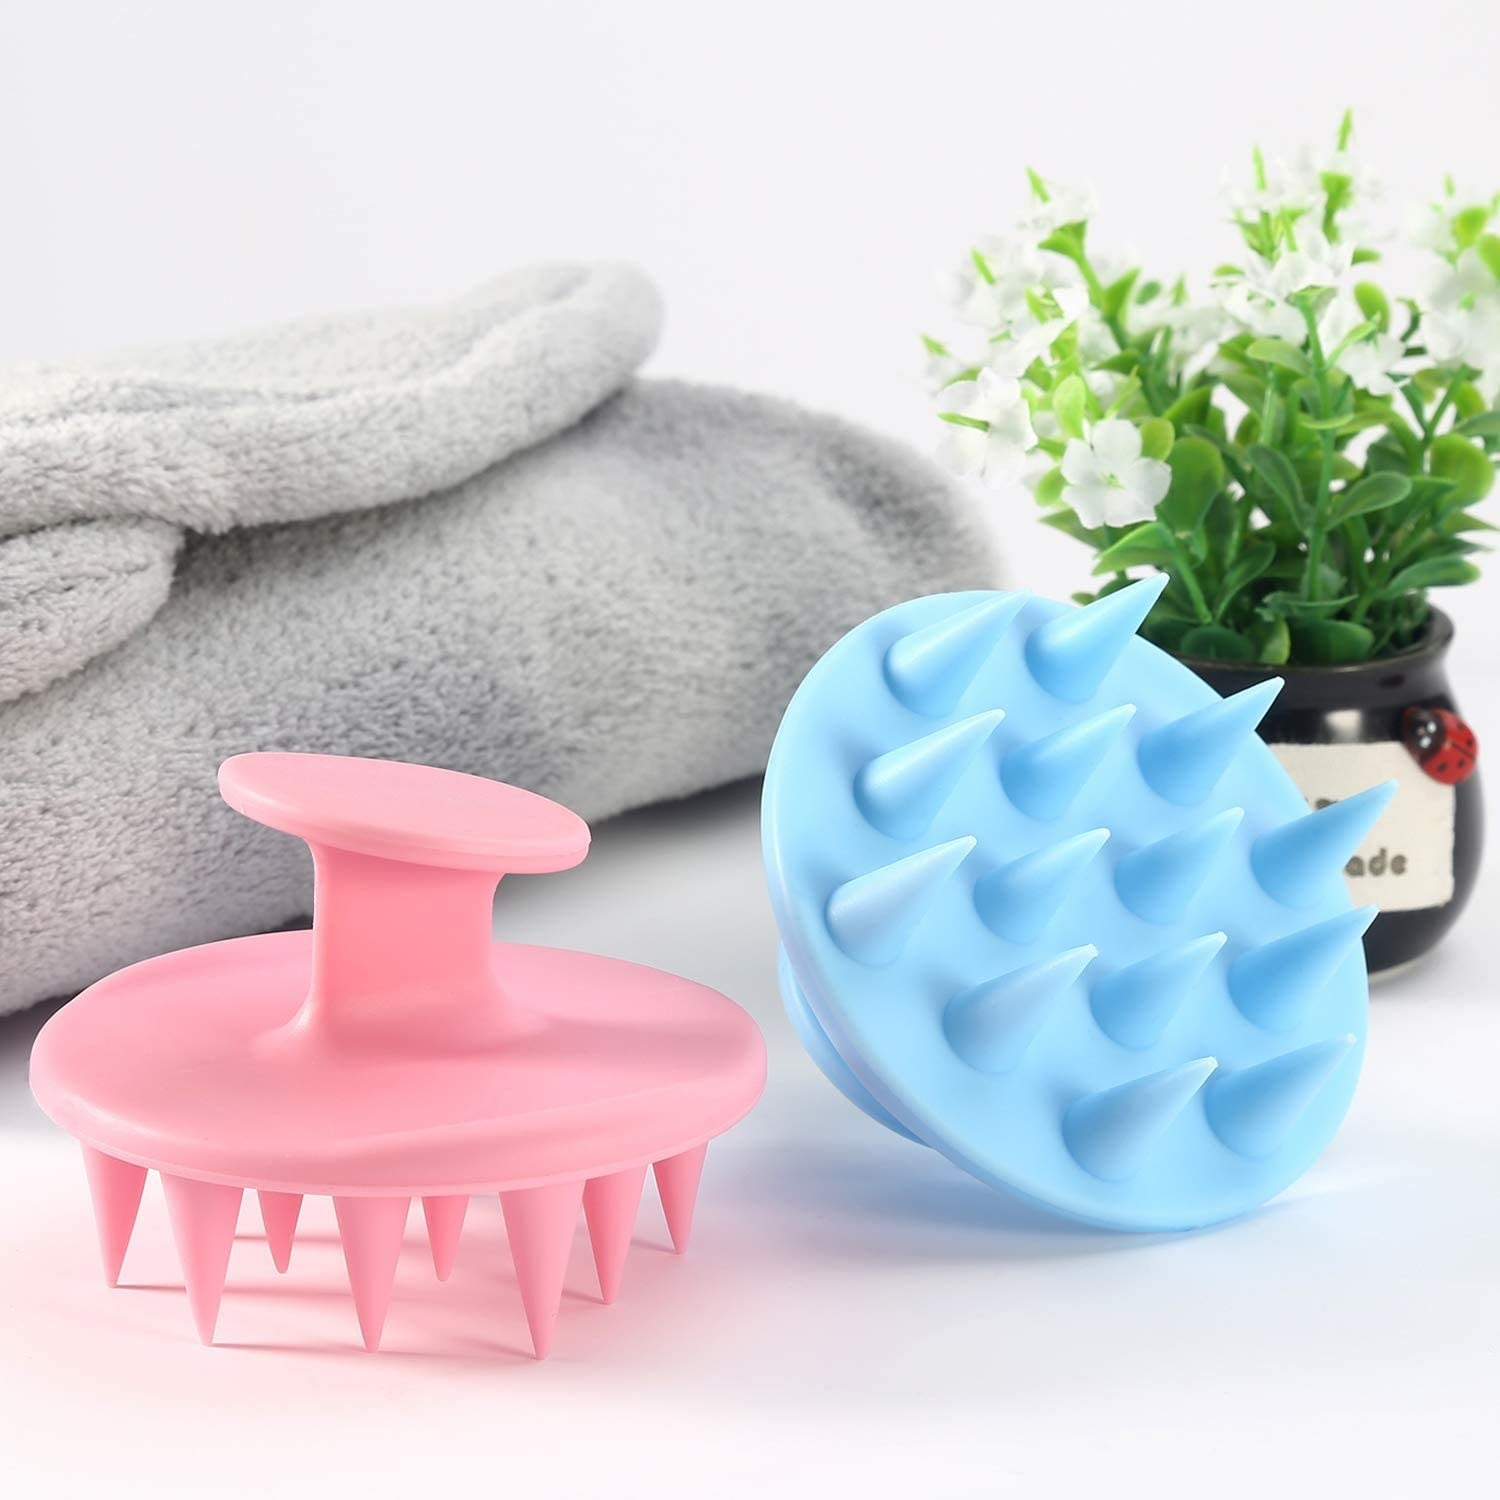 Two scalp massagers next to a towel and a plant